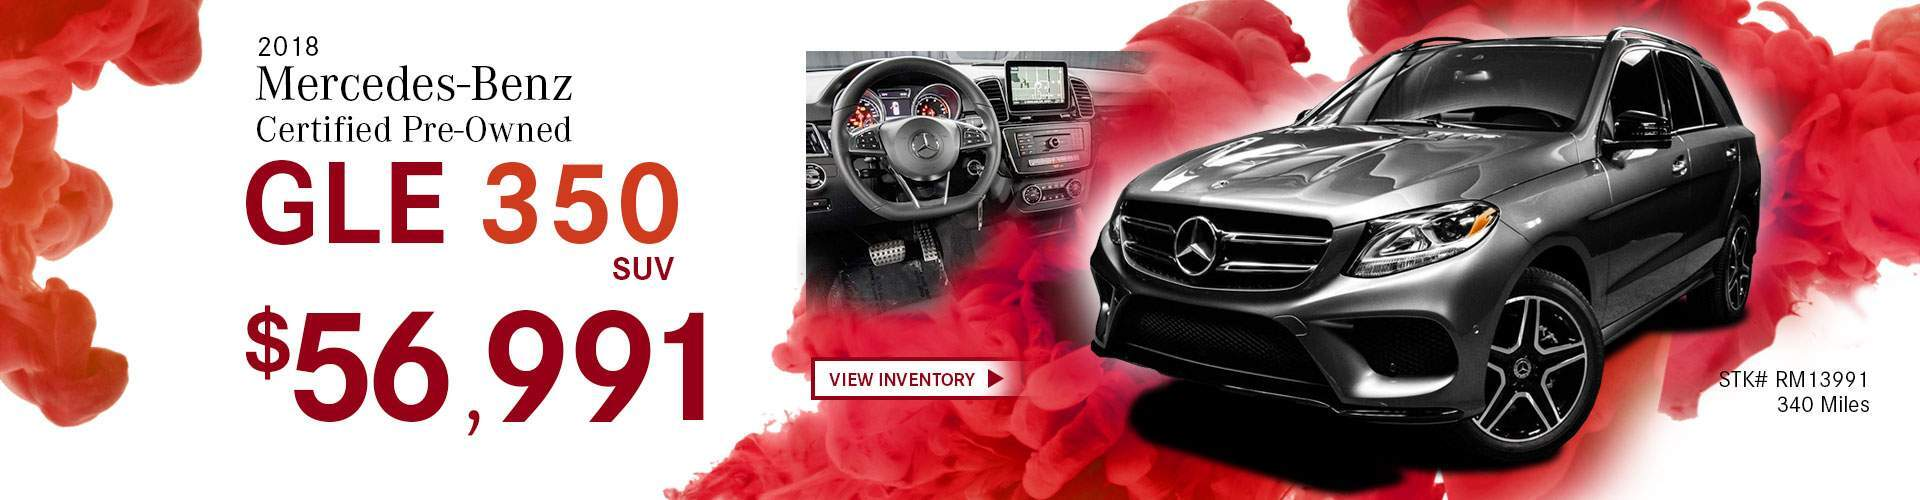 2018 Mercedes-Benz Certified Pre-Owned GLE 350 SUV